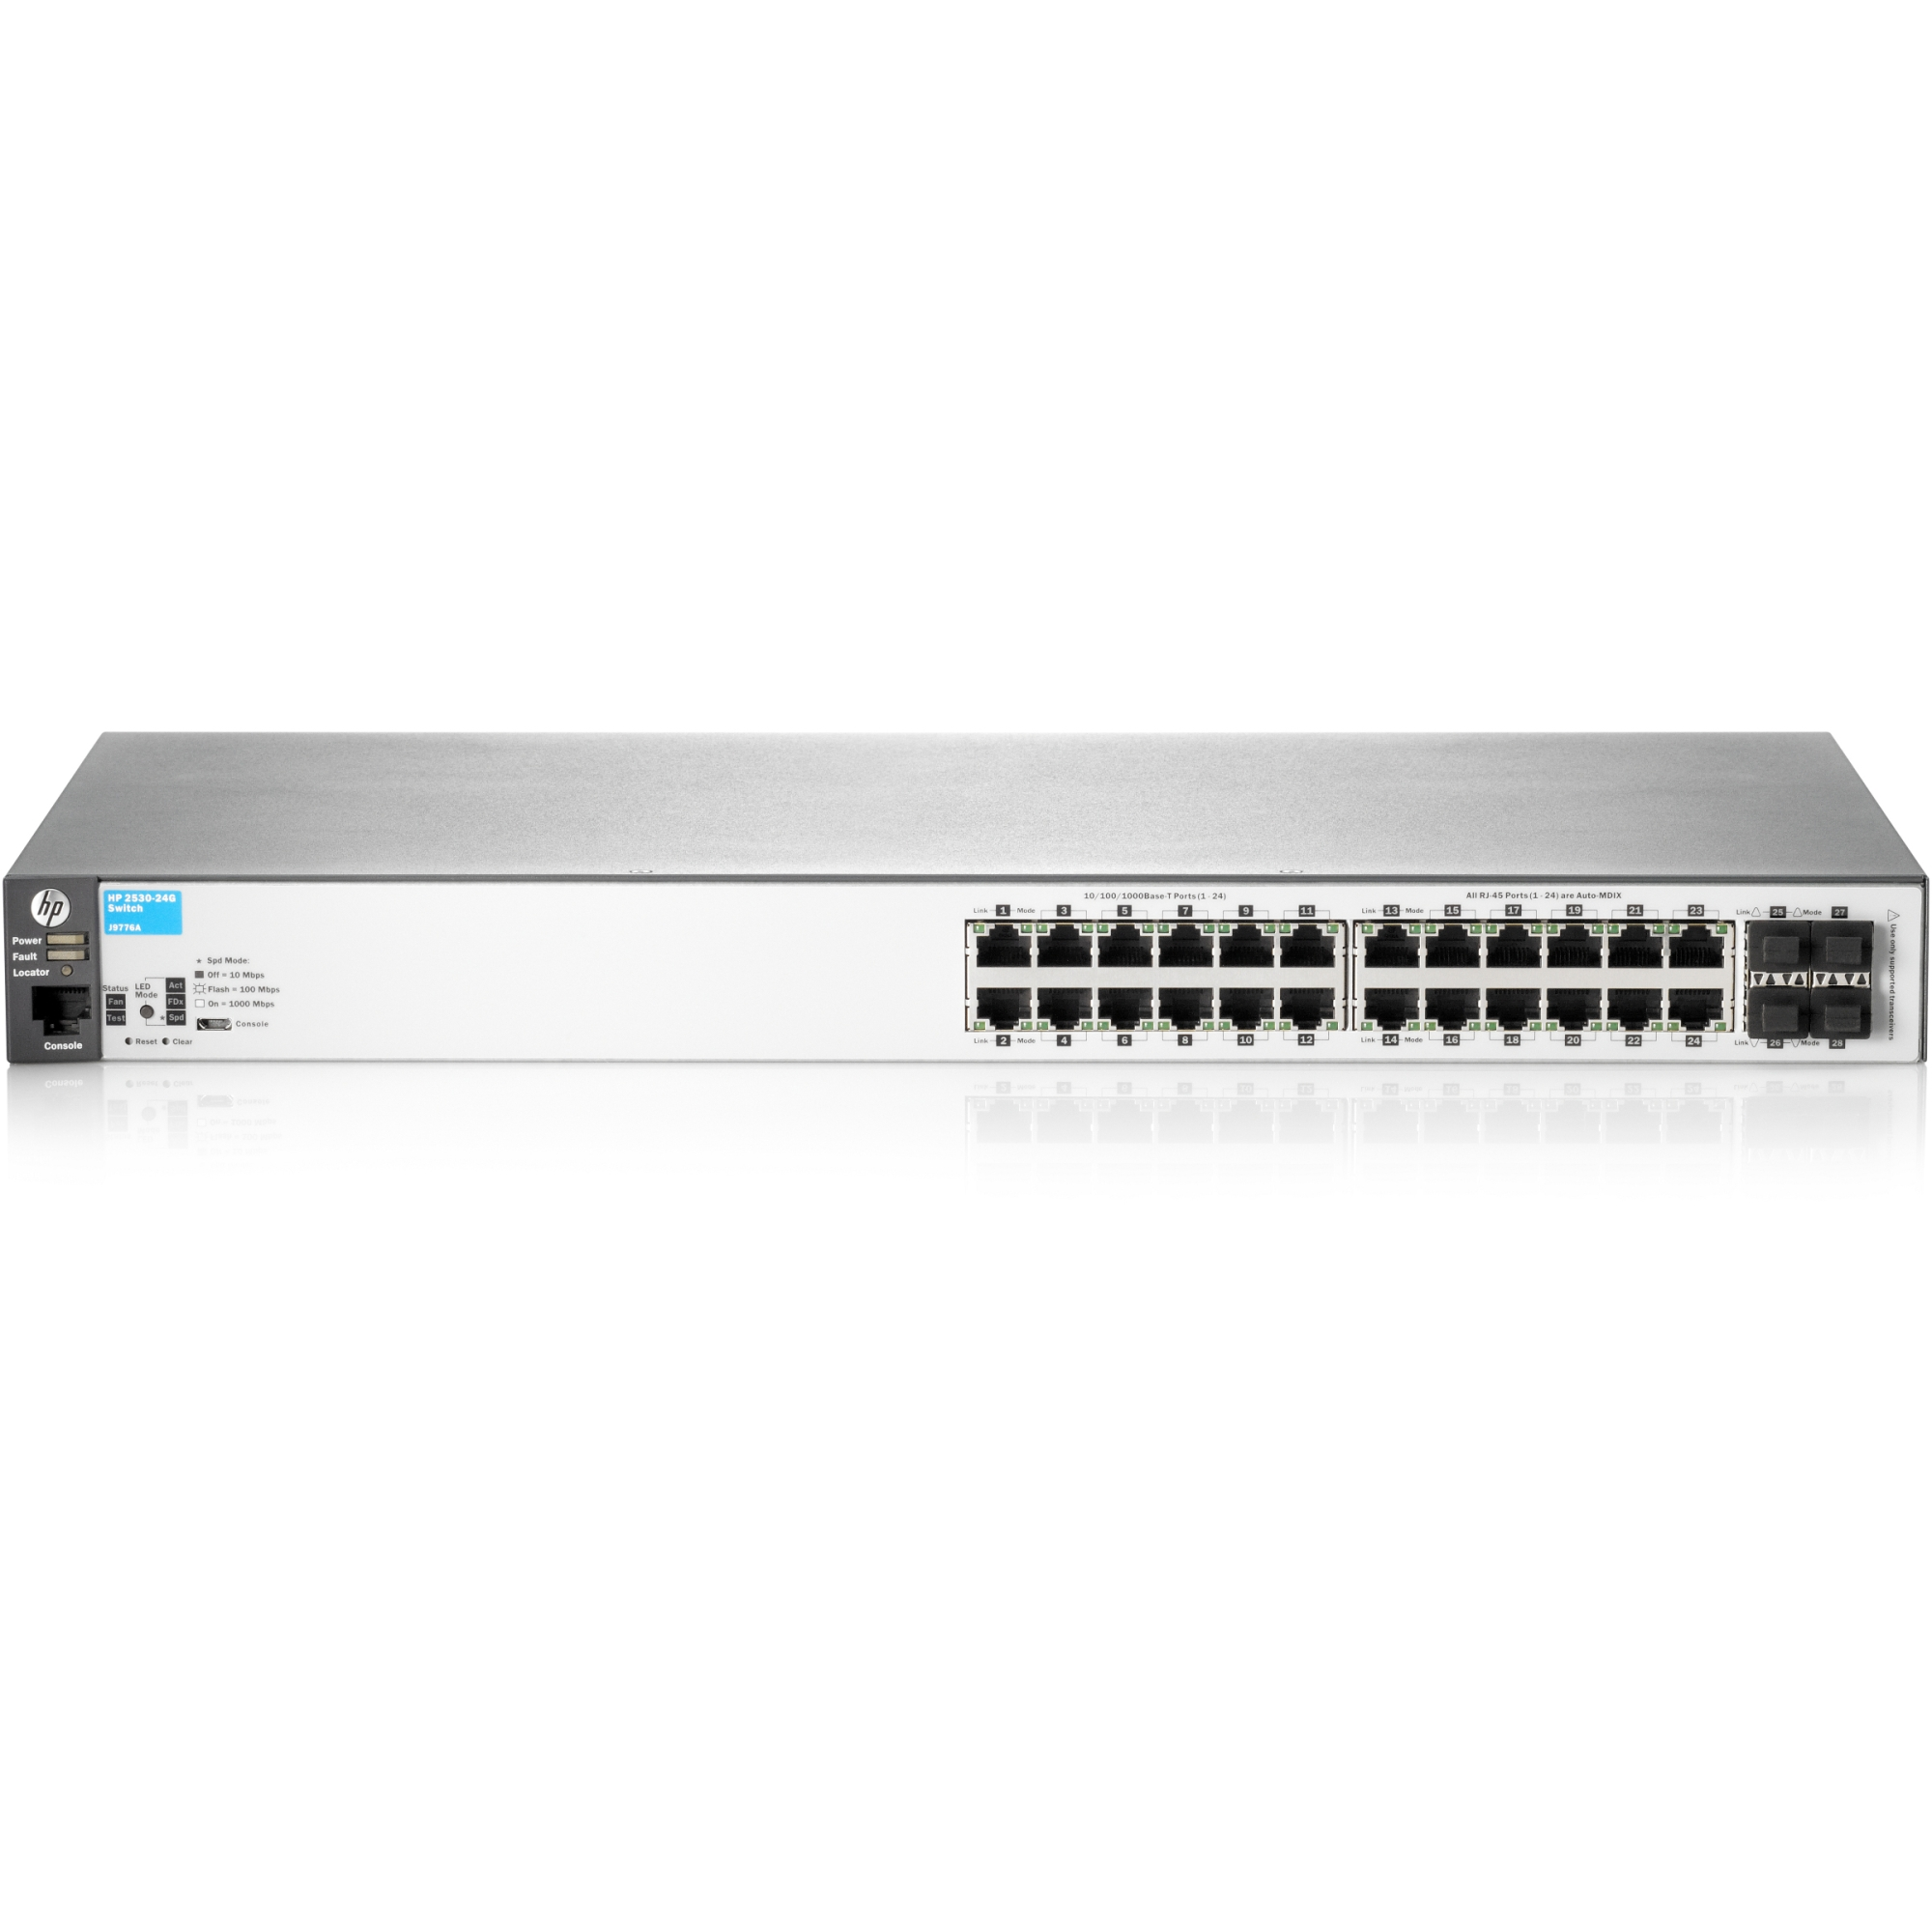 2530-24G Switch - 24 Ports - Manageable - 4 x Expansion Slots - 10/100/1000Base-T - 4 x SFP Slots - 2 Layer Supported - 1U High - Desktop Rack-mountable Wall MountableLifetime Limited Warranty